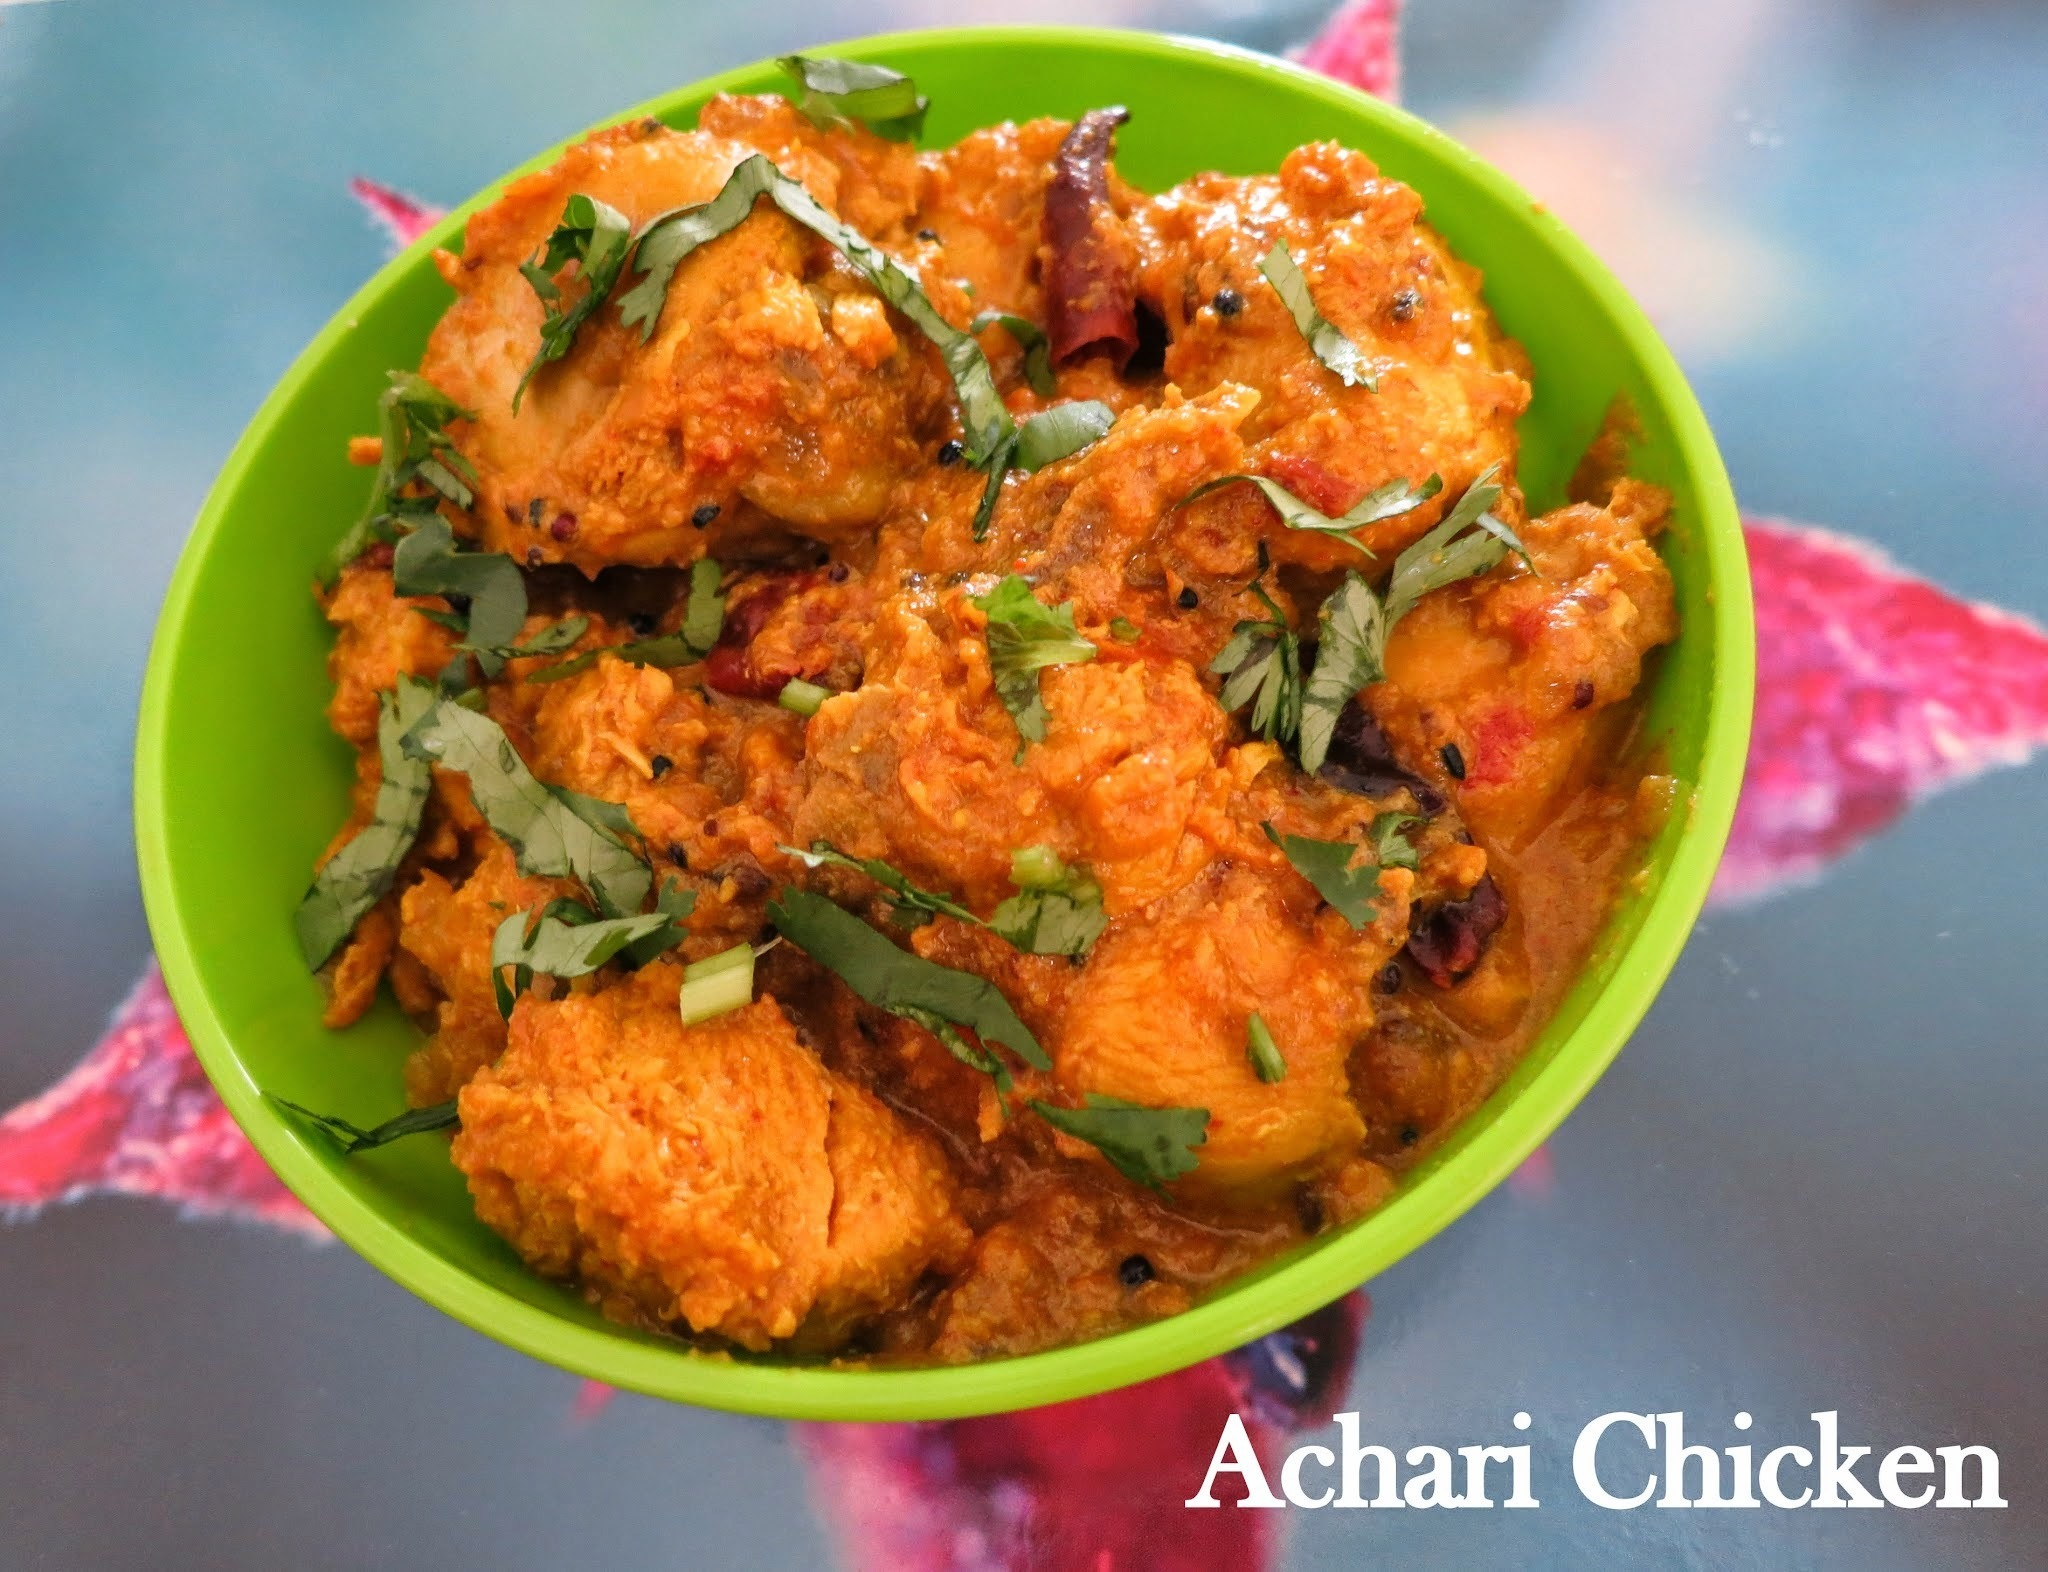 Achari Chicken( chicken cooked with pickling spices)